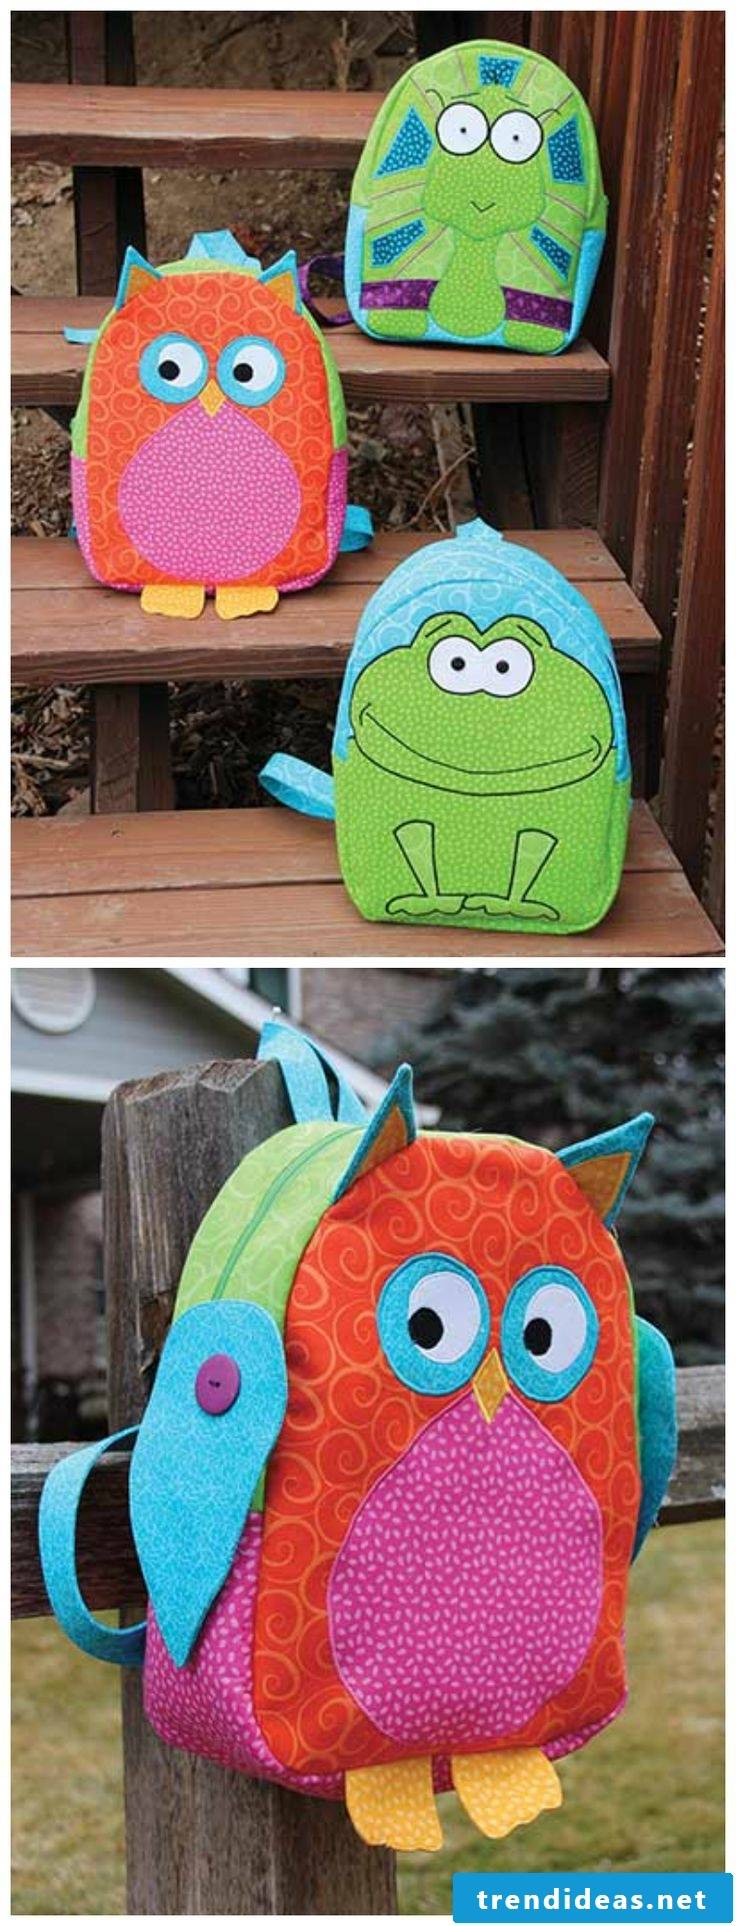 Sew kids backpack by yourself - funny ideas